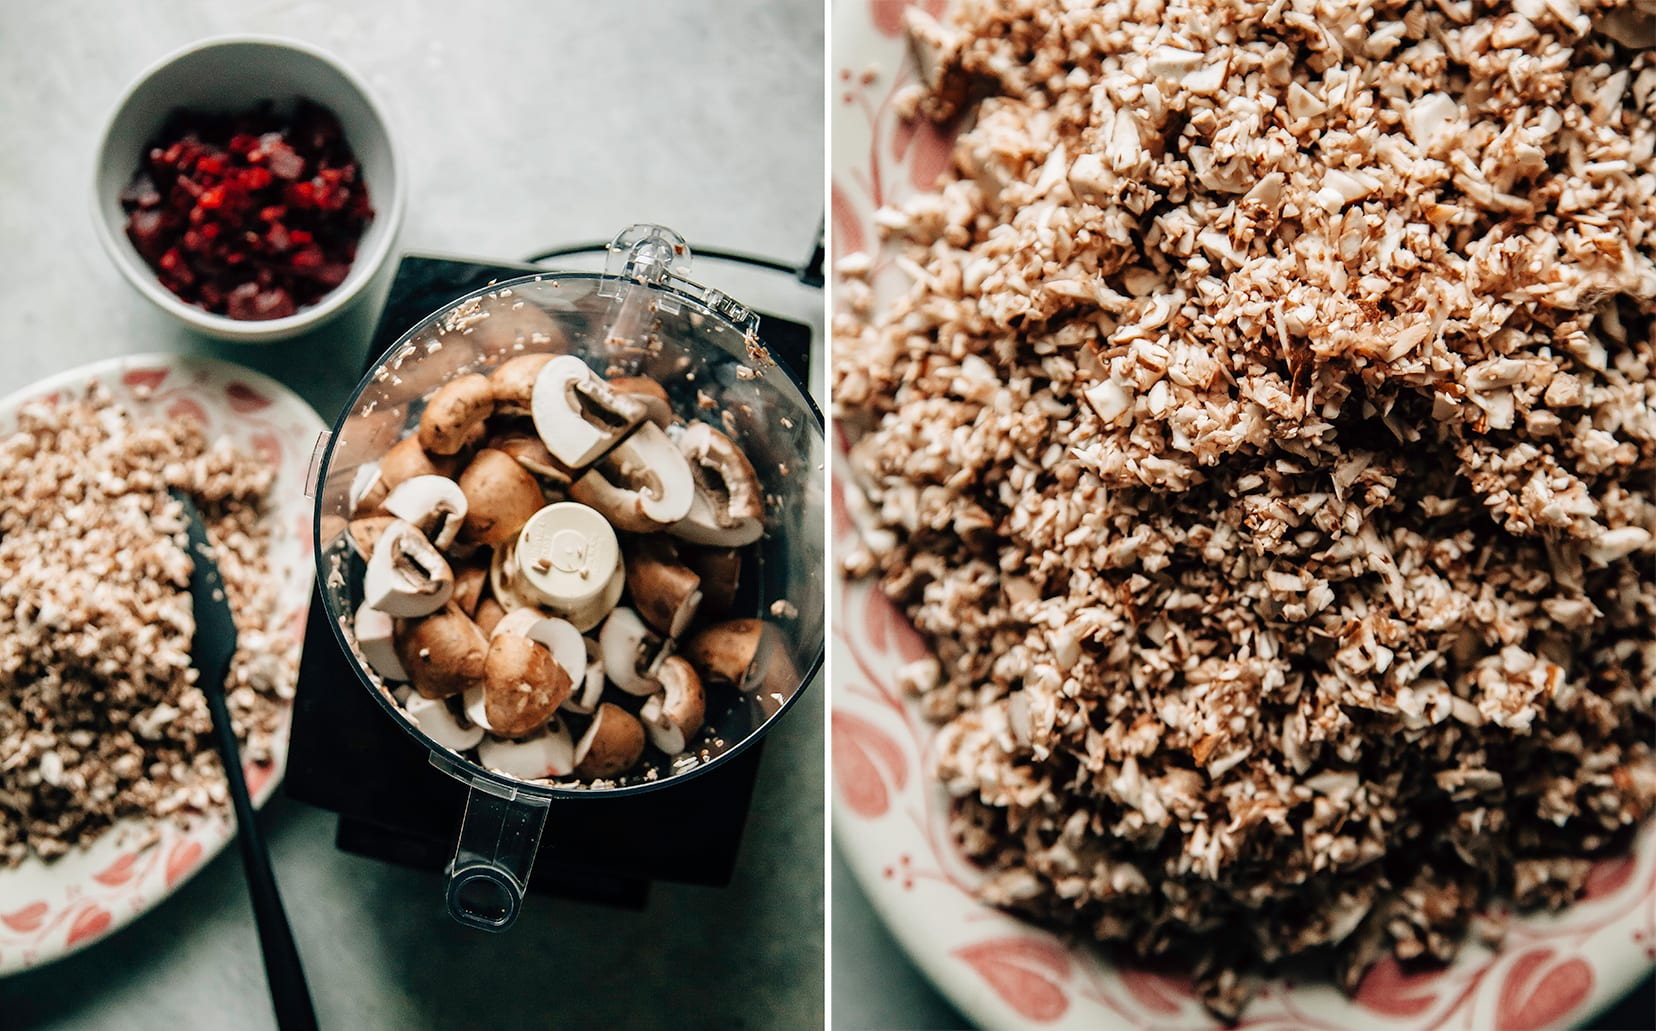 Two images show mushrooms being finely chopped in a food processor.